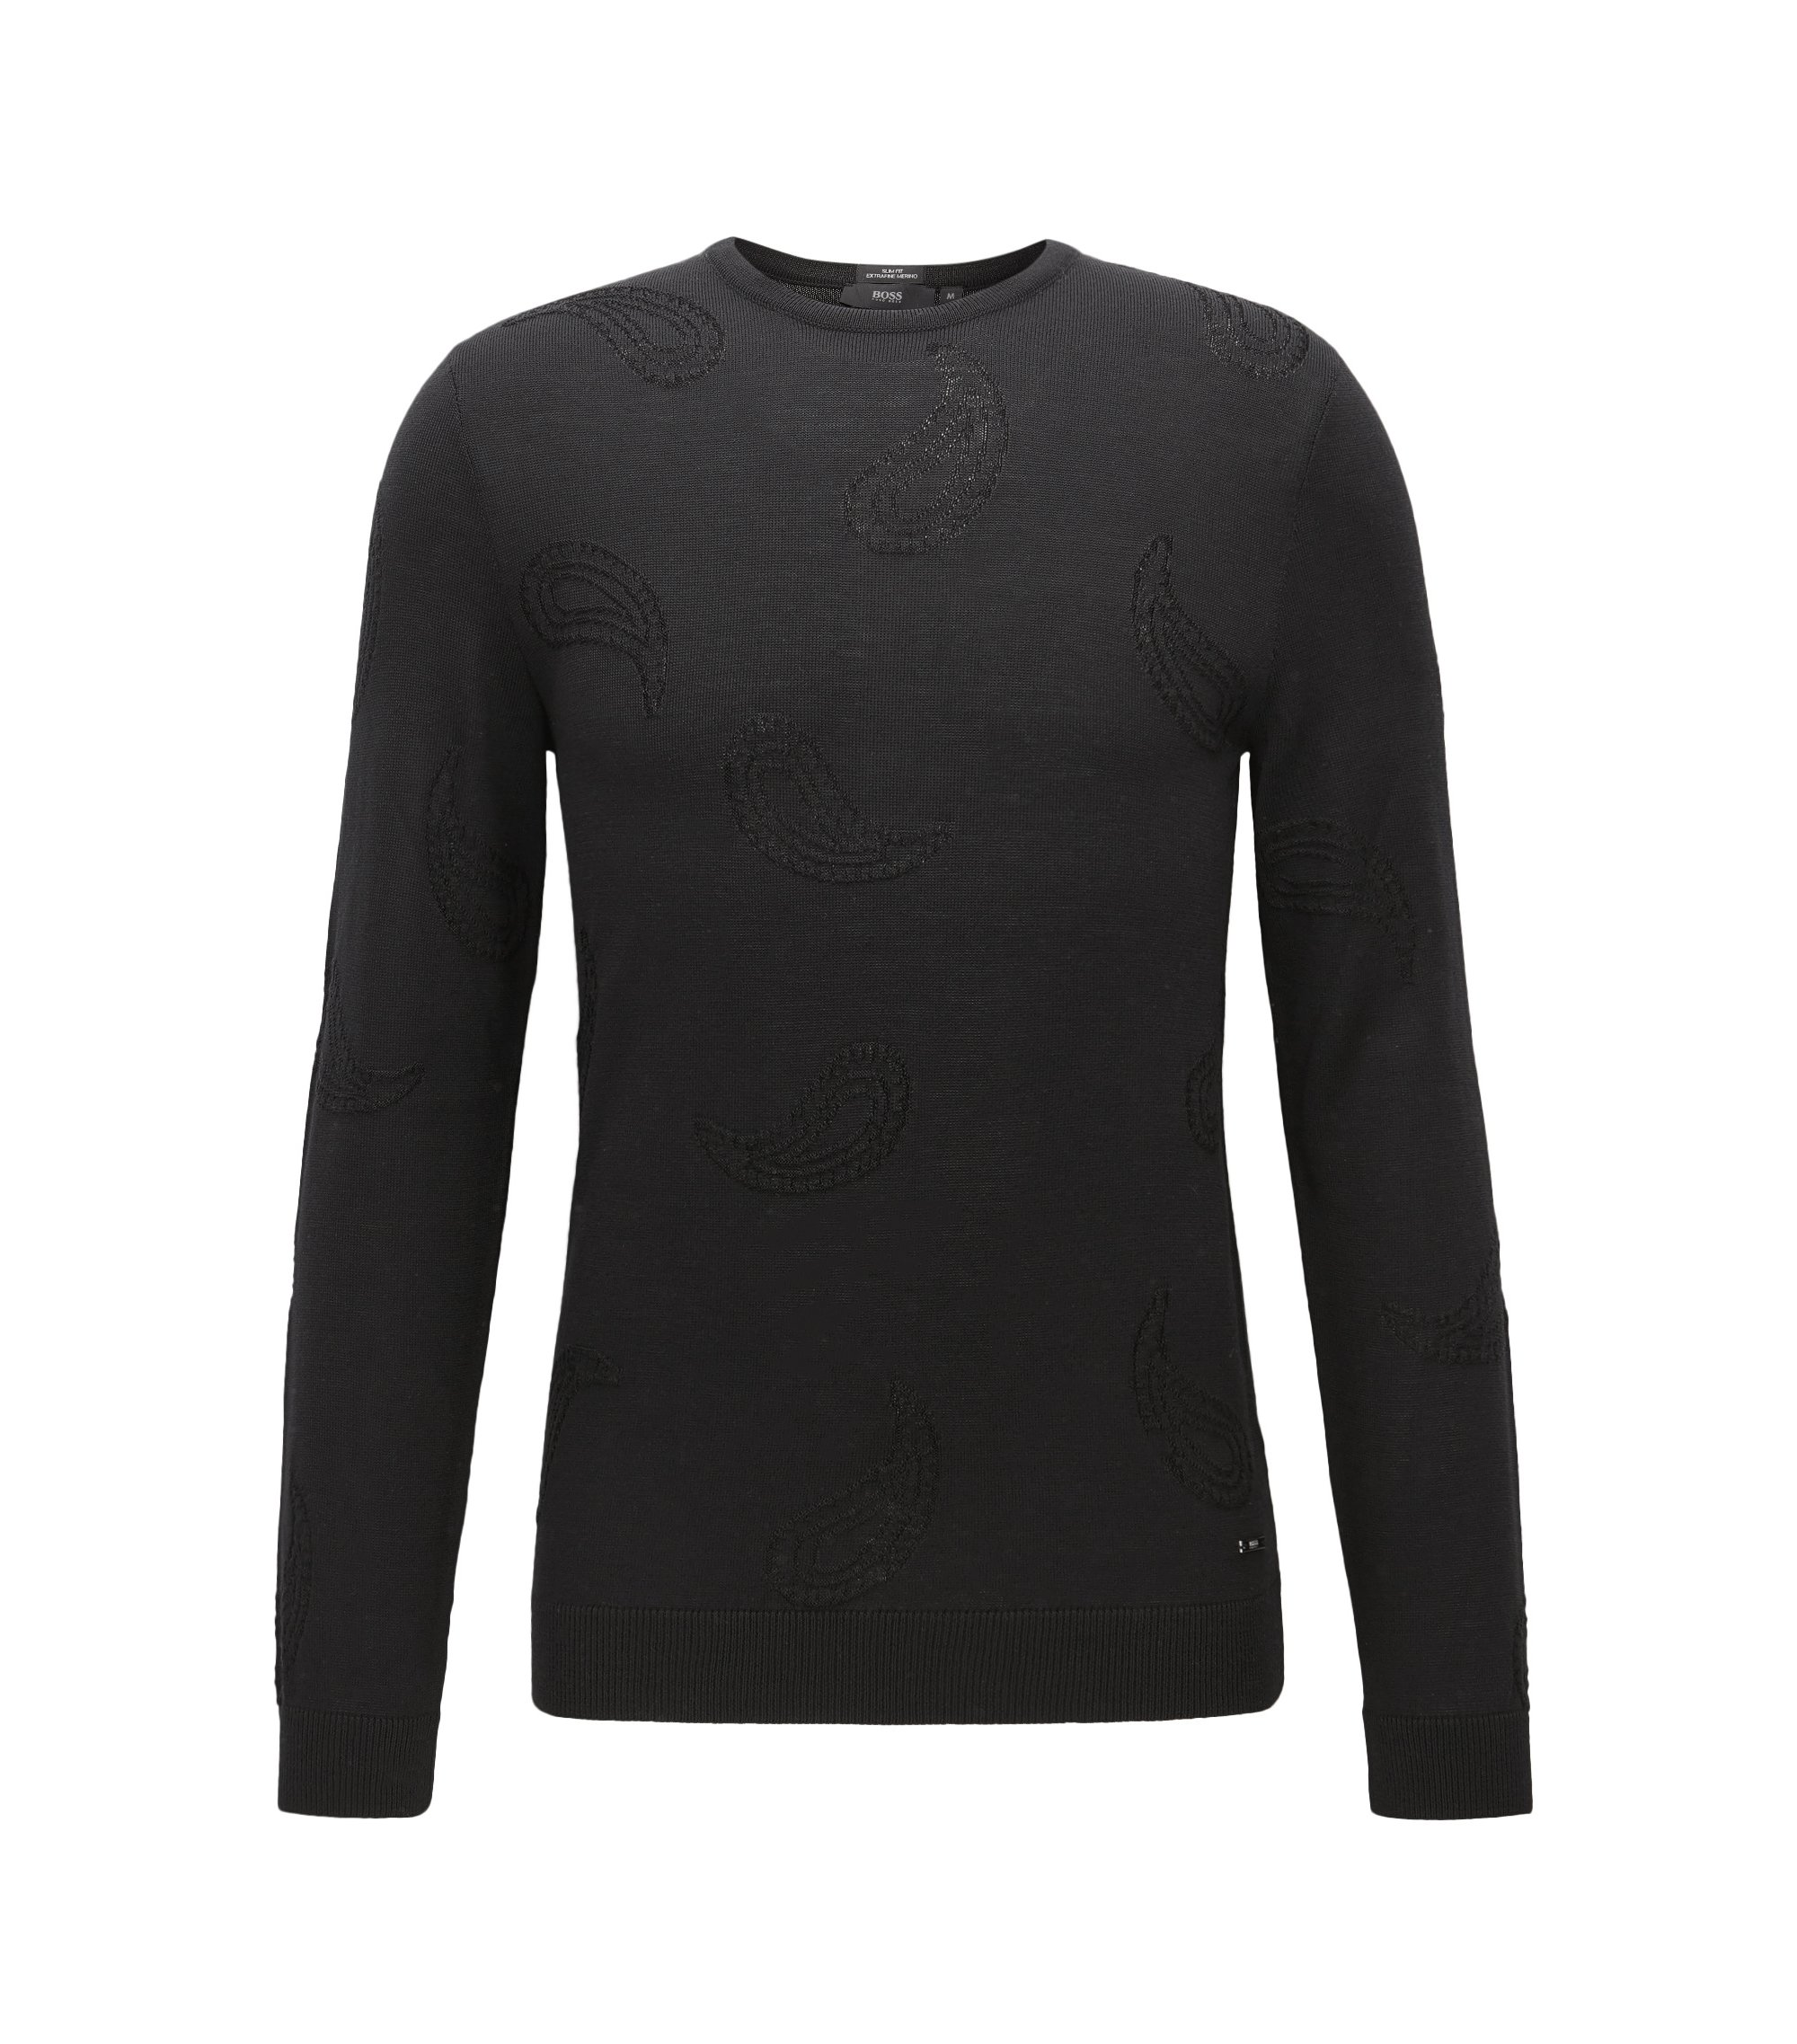 Paisley embroidered crew-neck sweater in a wool blend, Black